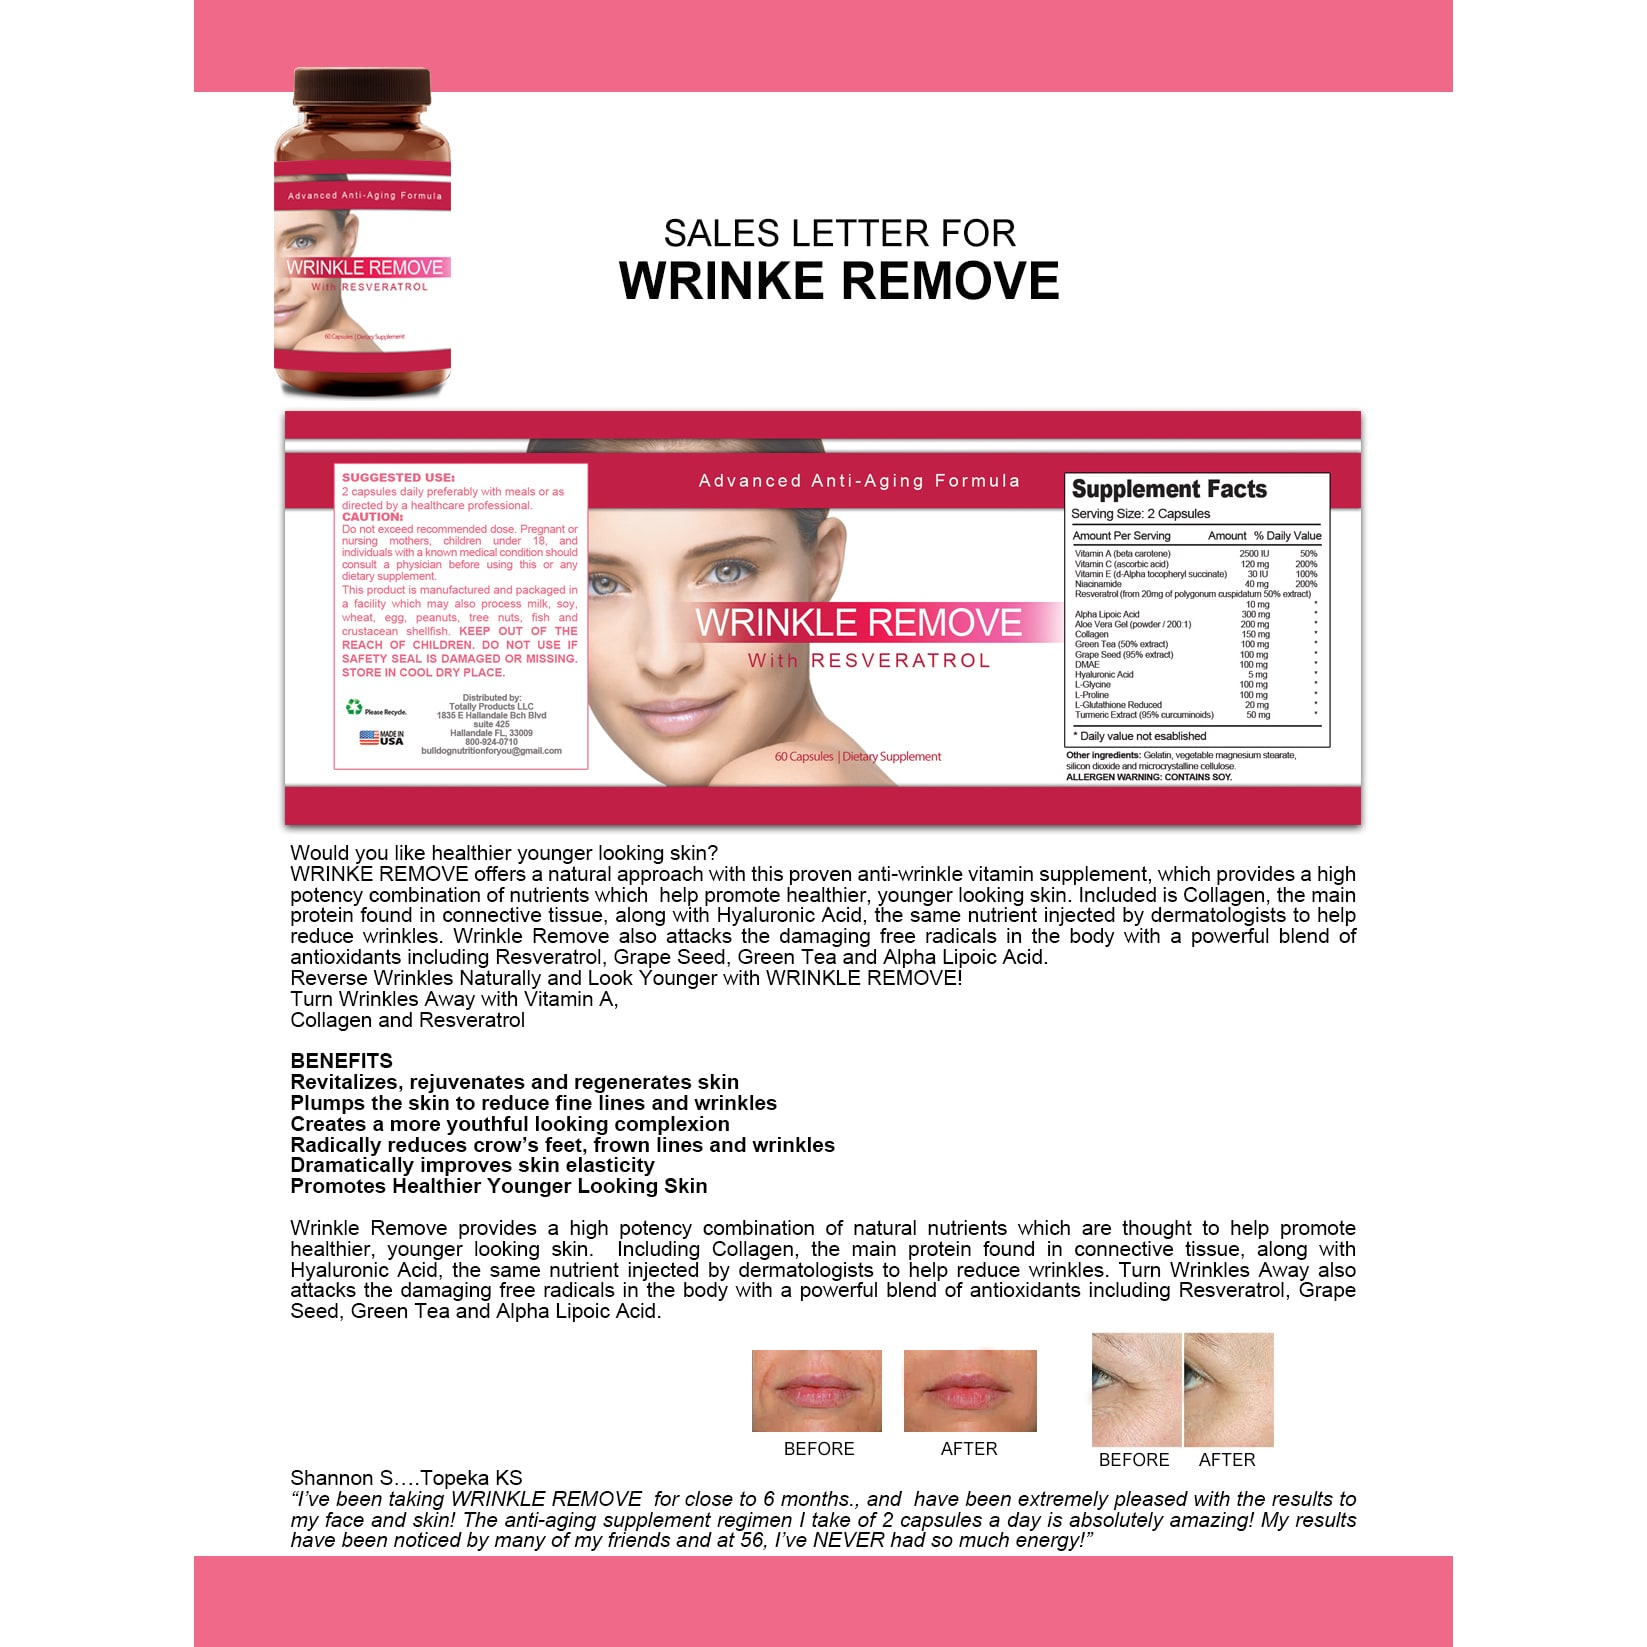 Shop Wrinkle Remove Dietary Supplement With Resveratrol Vitamin A C E Green Tea And Collagen Overstock 13028999